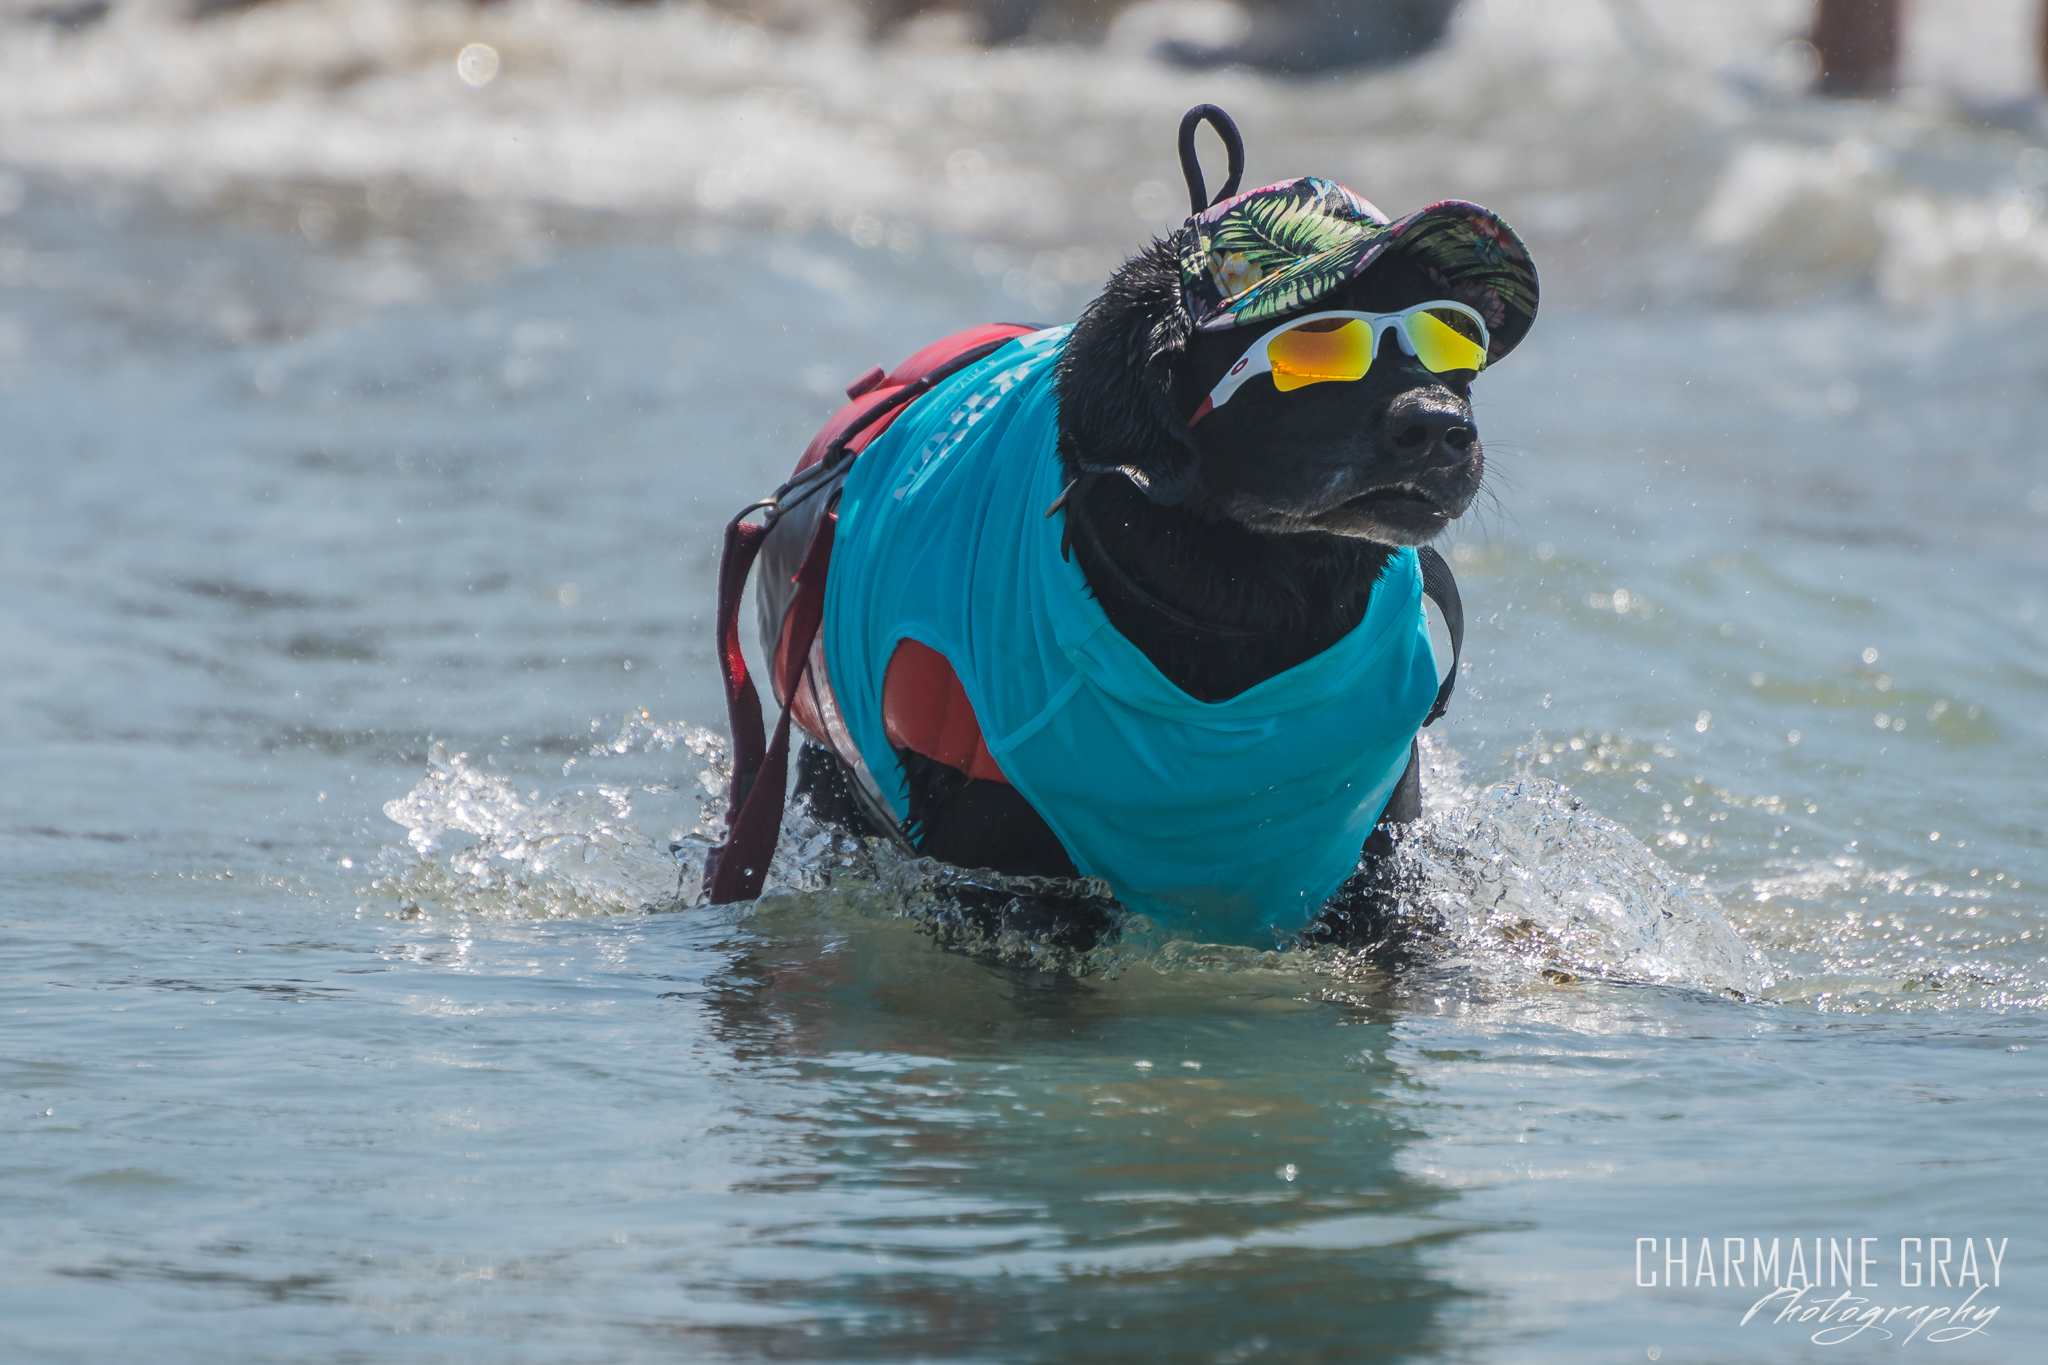 pet photographer, pet photography, pet portrait, pet, animal, charmaine gray photography, charmaine gray pet photography, san diego,dog,canine,california,surf,surfing, black lab, kole